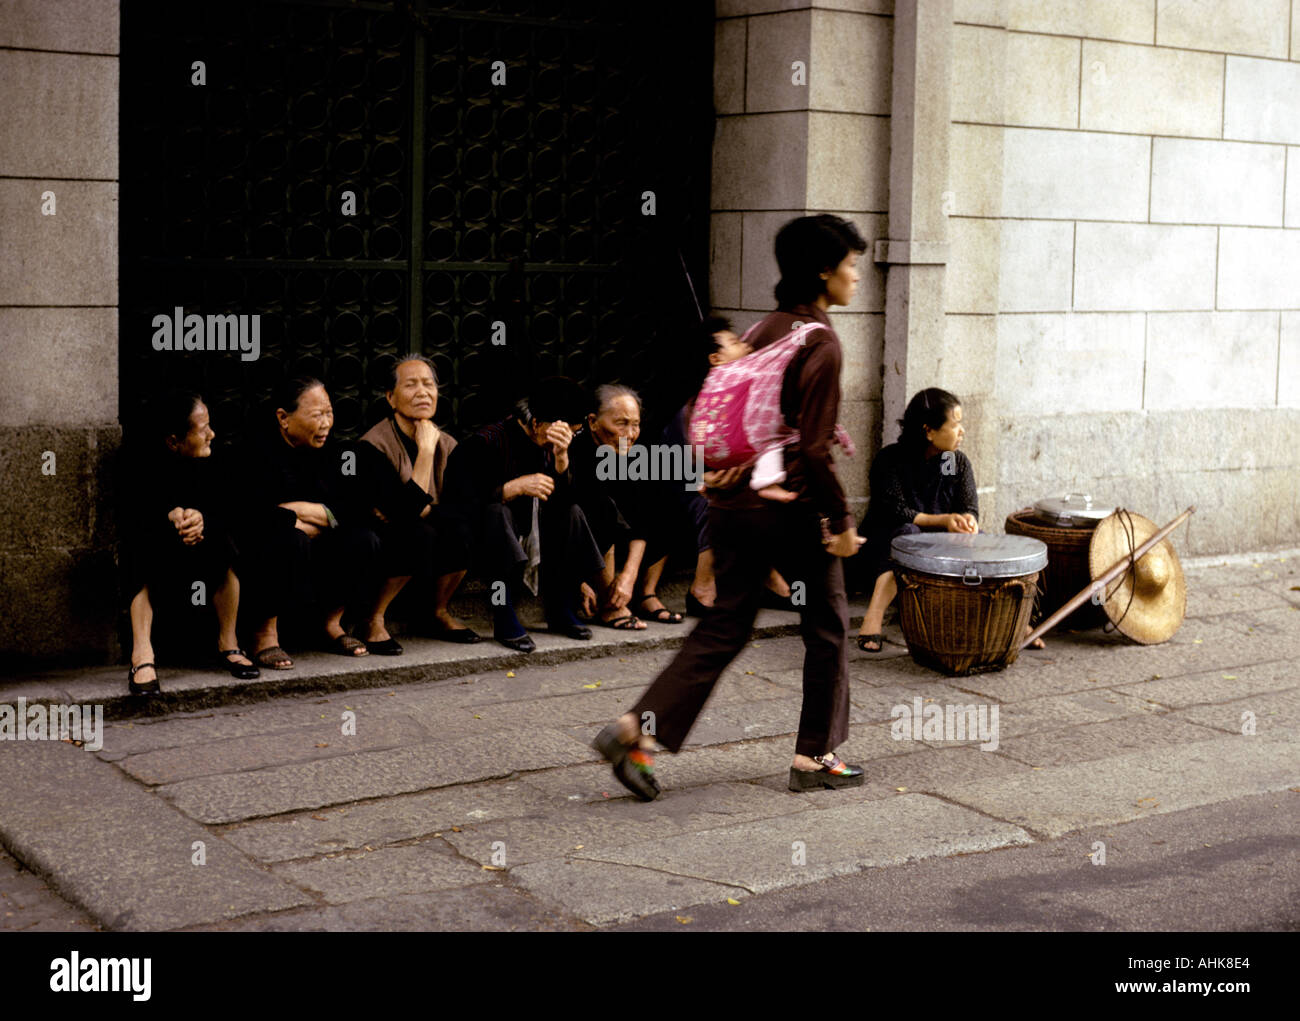 Seated women in black  in a doorway  watch the world go by Macao - Stock Image